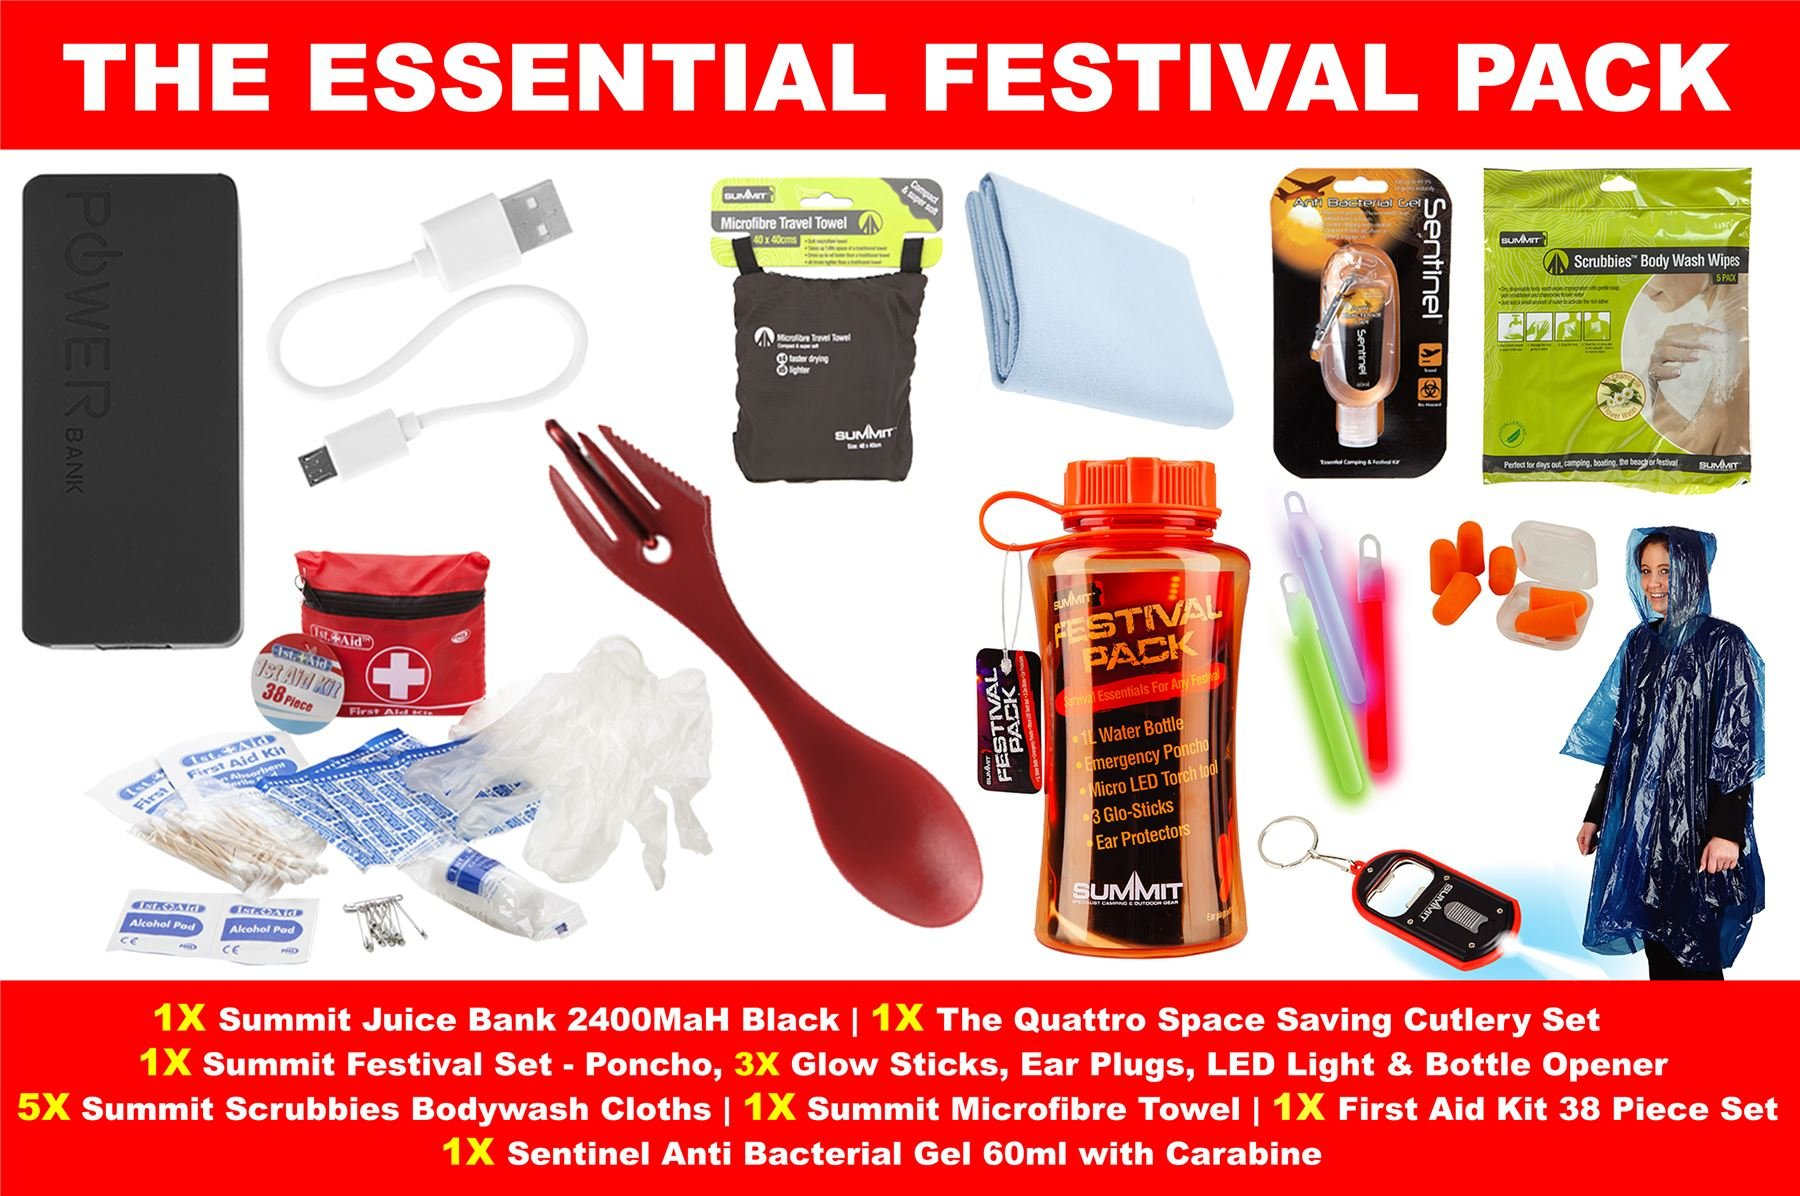 TentSpares THE ESSENTIAL MUSIC FESTIVAL OUTDOOR CAMPING DOFE SURVIVAL KIT FUN GIFT SET WITH JUICE BANK 1